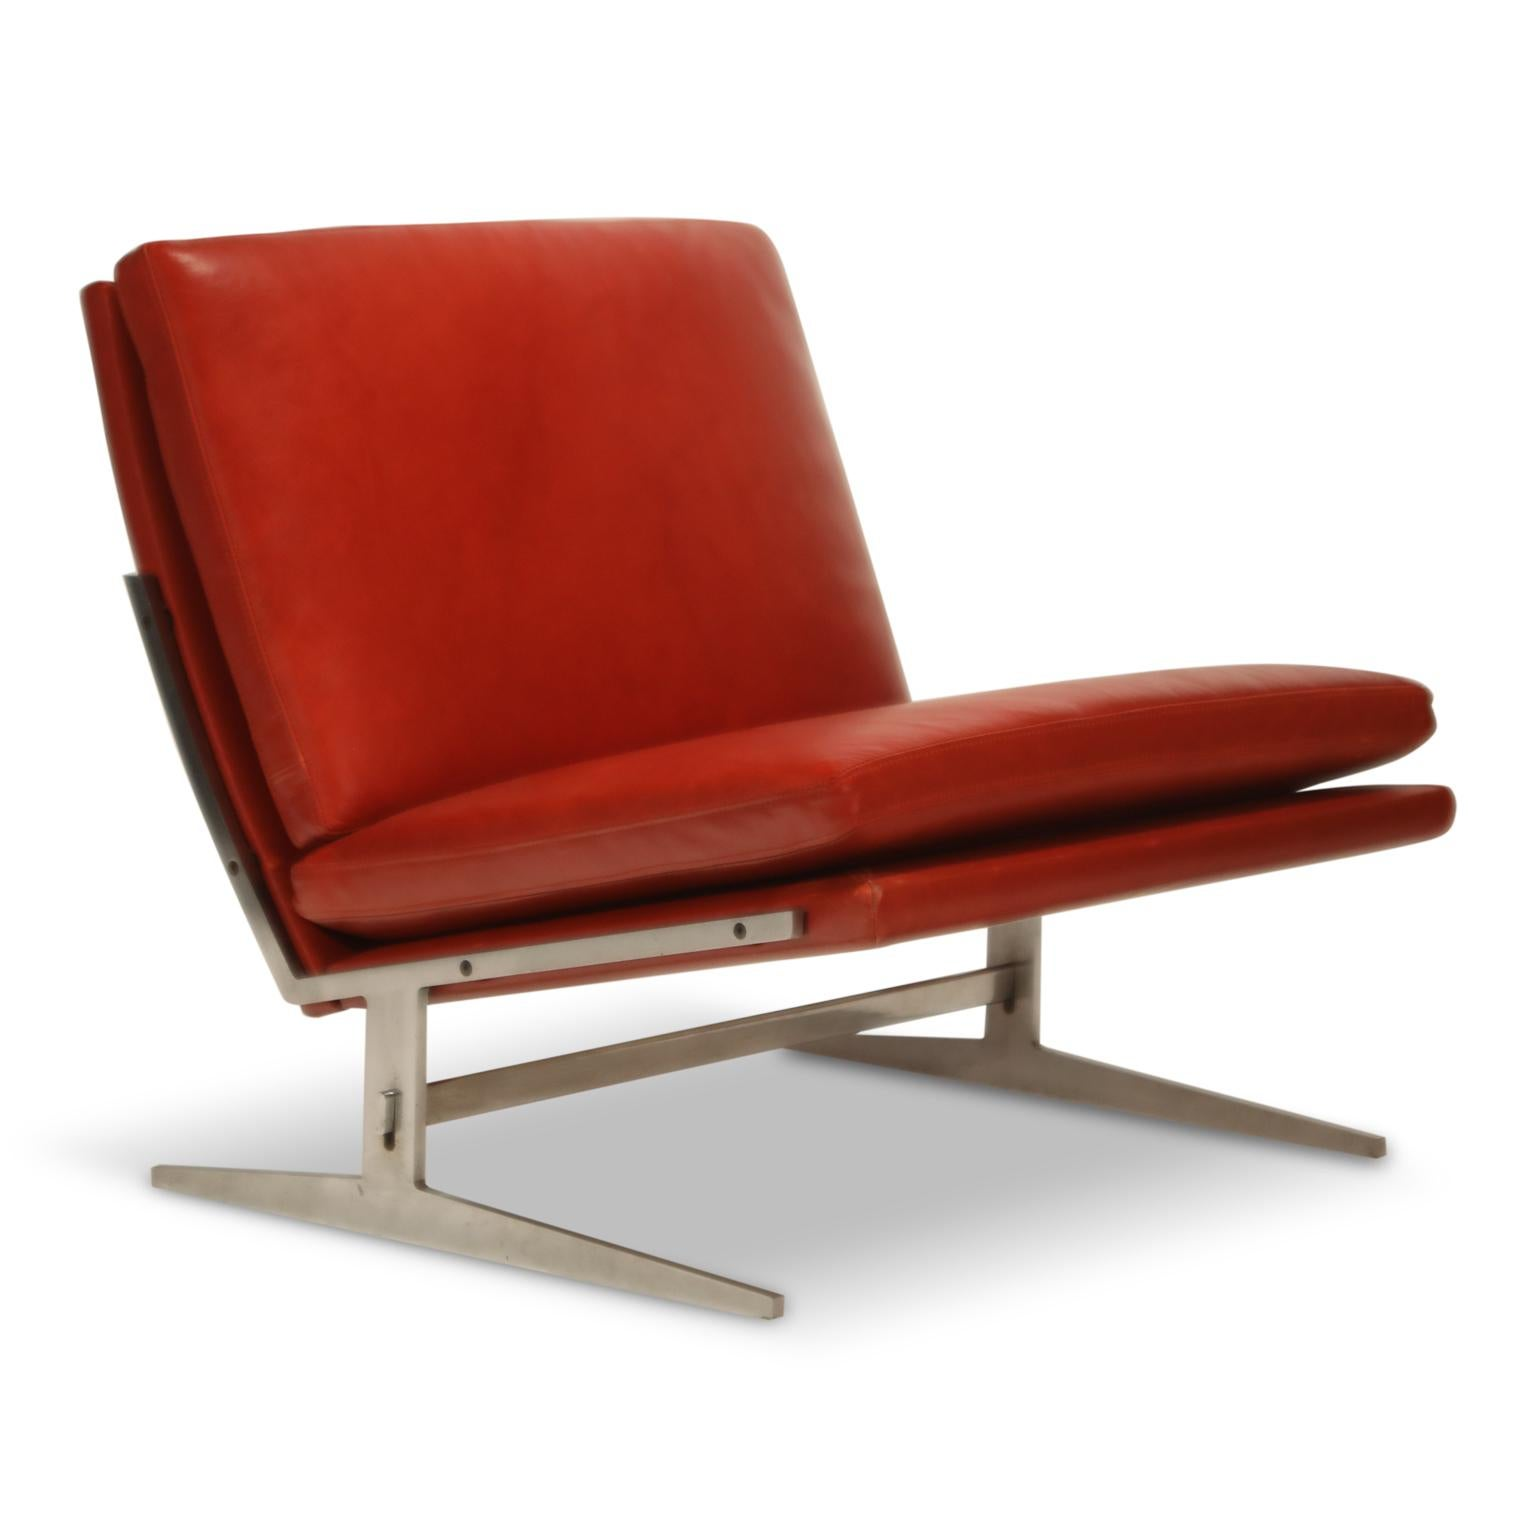 A red leather lounge chair designed by Jørgen Kastholm and Preben Fabricius in 1962 for Danish maker Bo-Ex, offered by Automaton